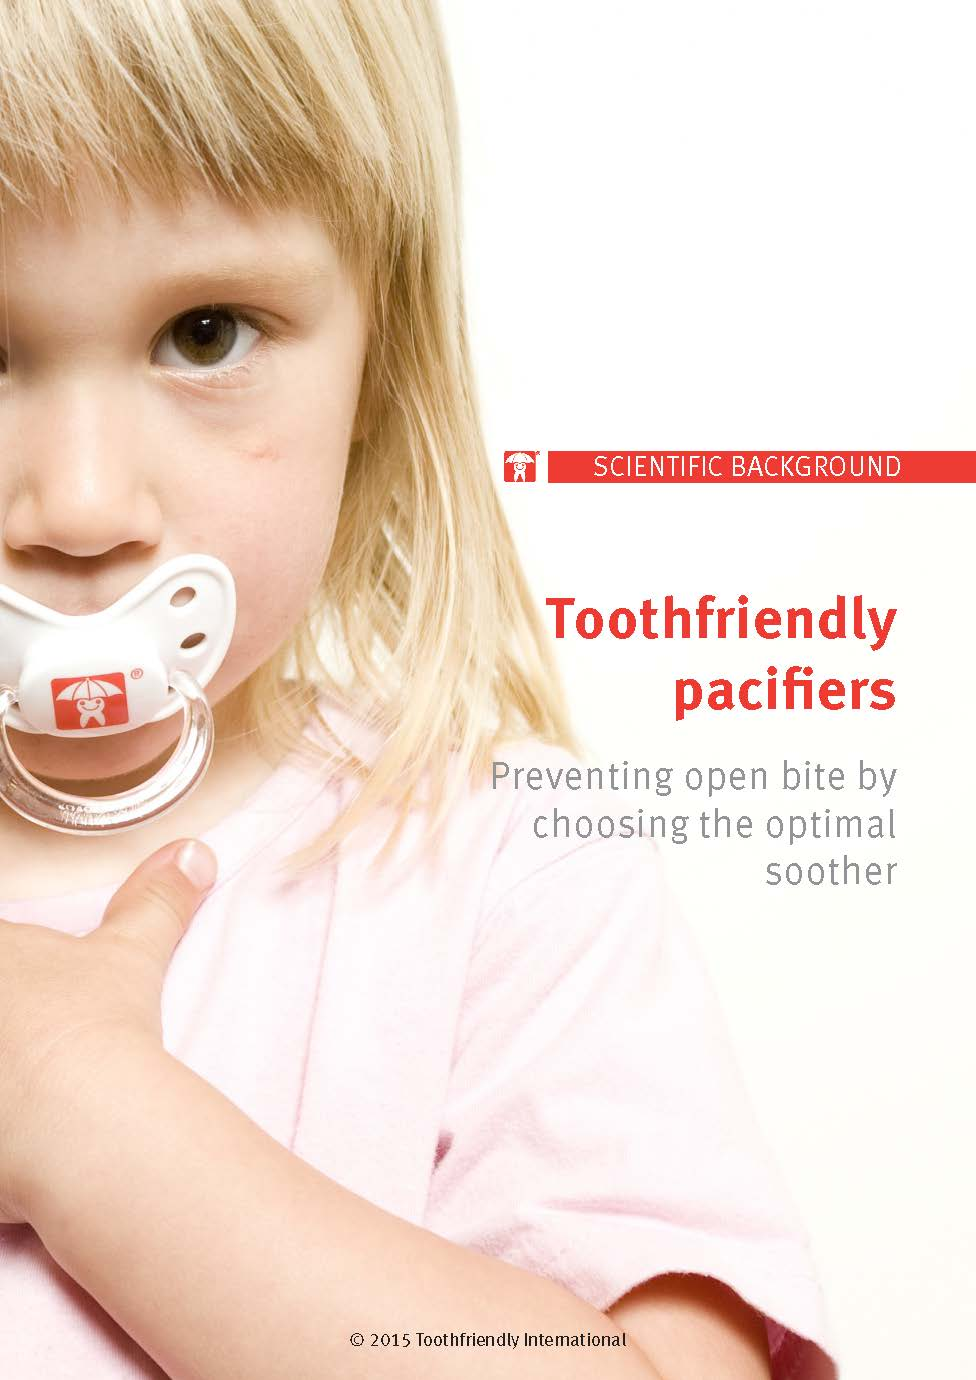 Toothfriendlypacifiers webpicture